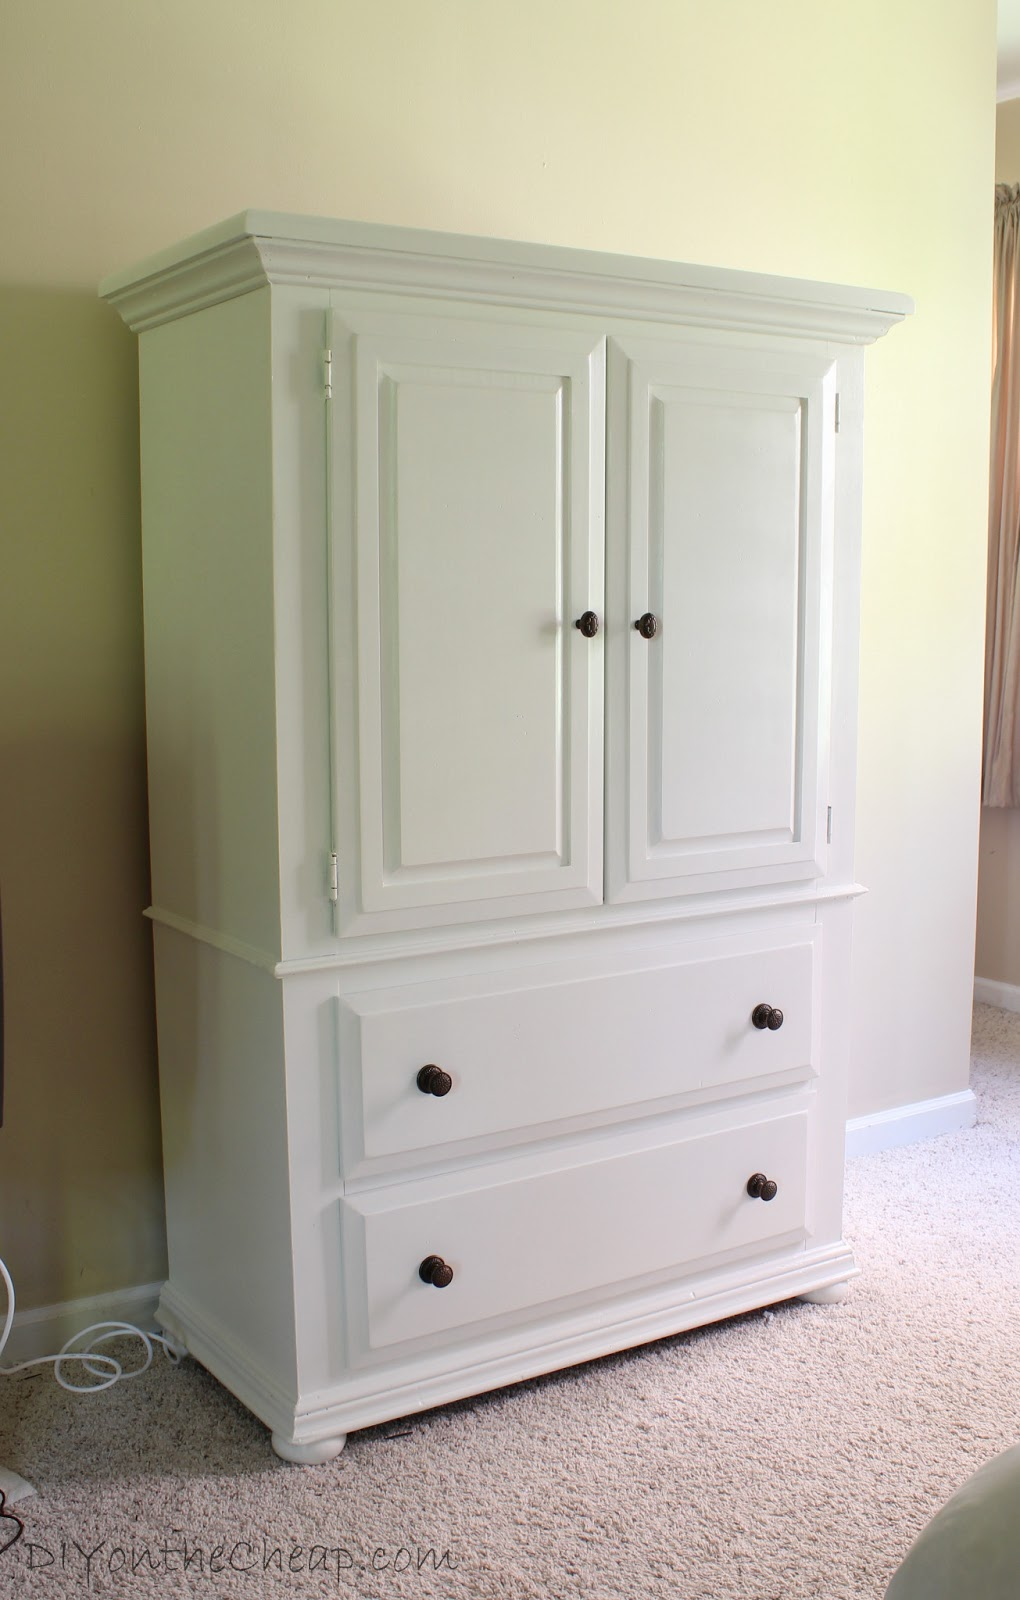 armoire makeover master bedroom progress report erin spain. Black Bedroom Furniture Sets. Home Design Ideas